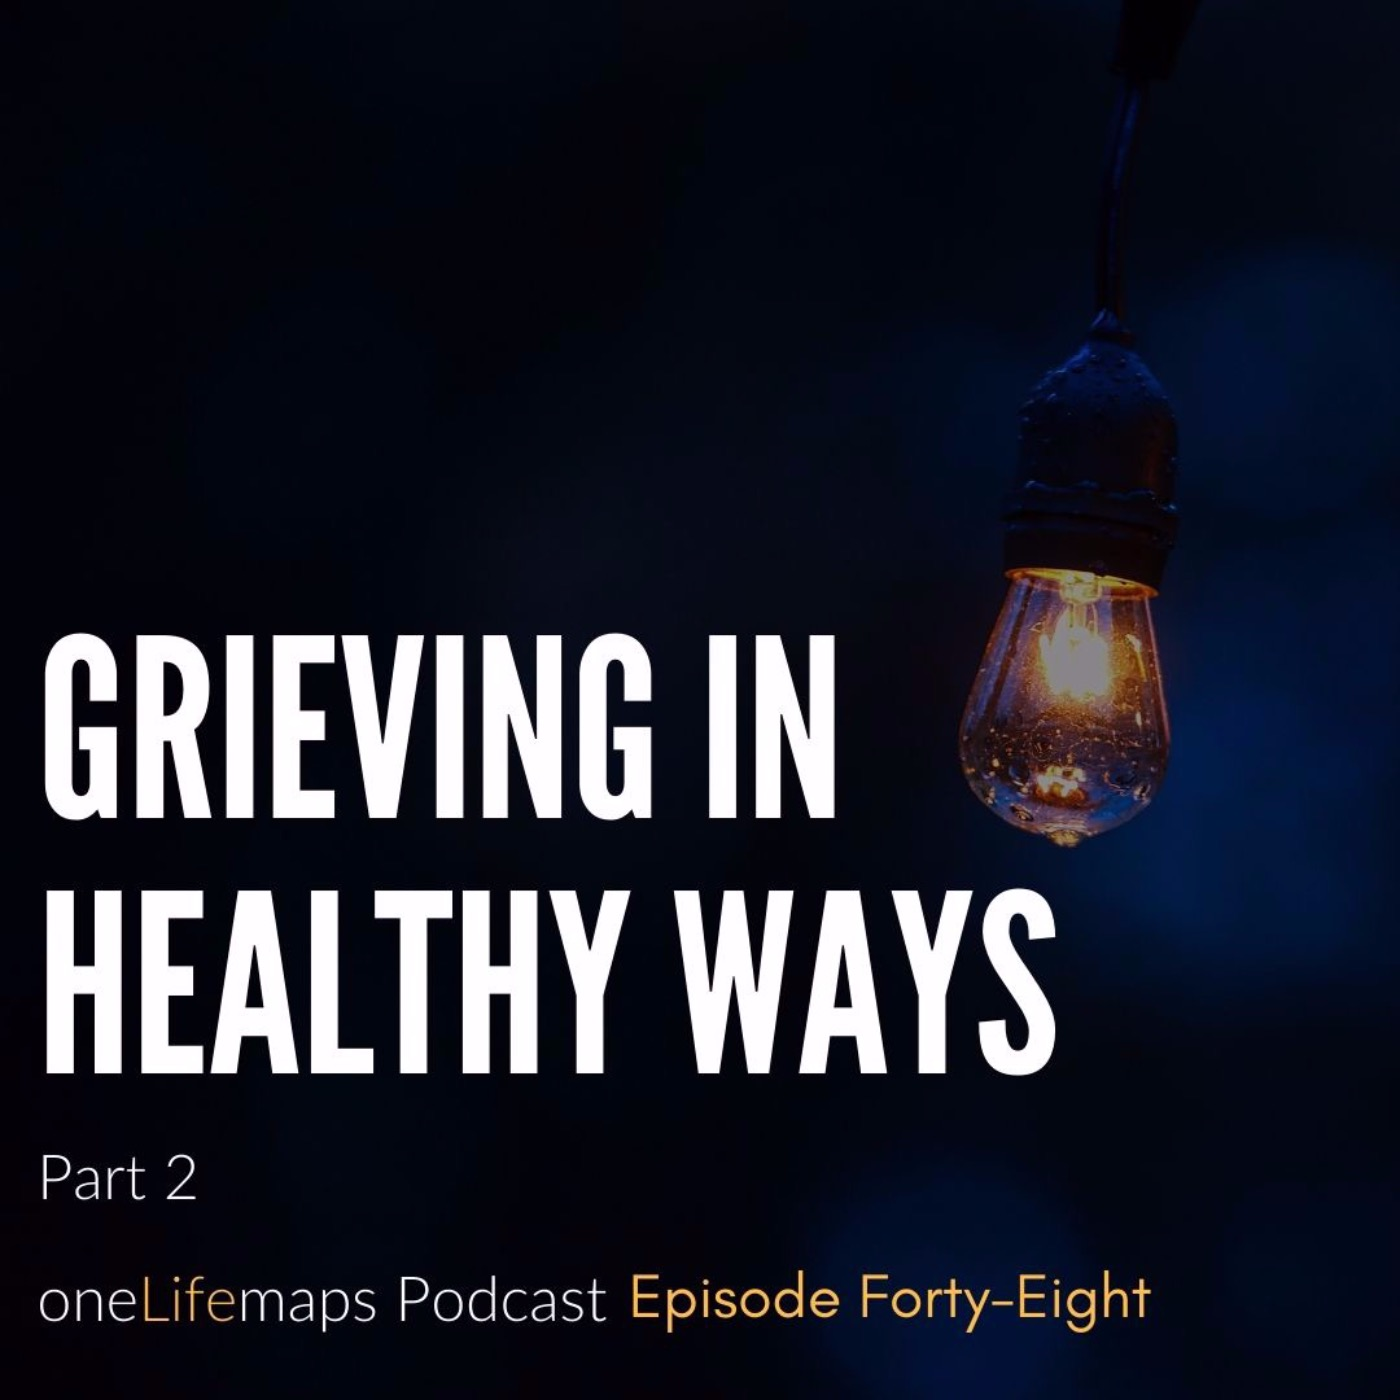 Grieving in Healthy Ways - Part 2